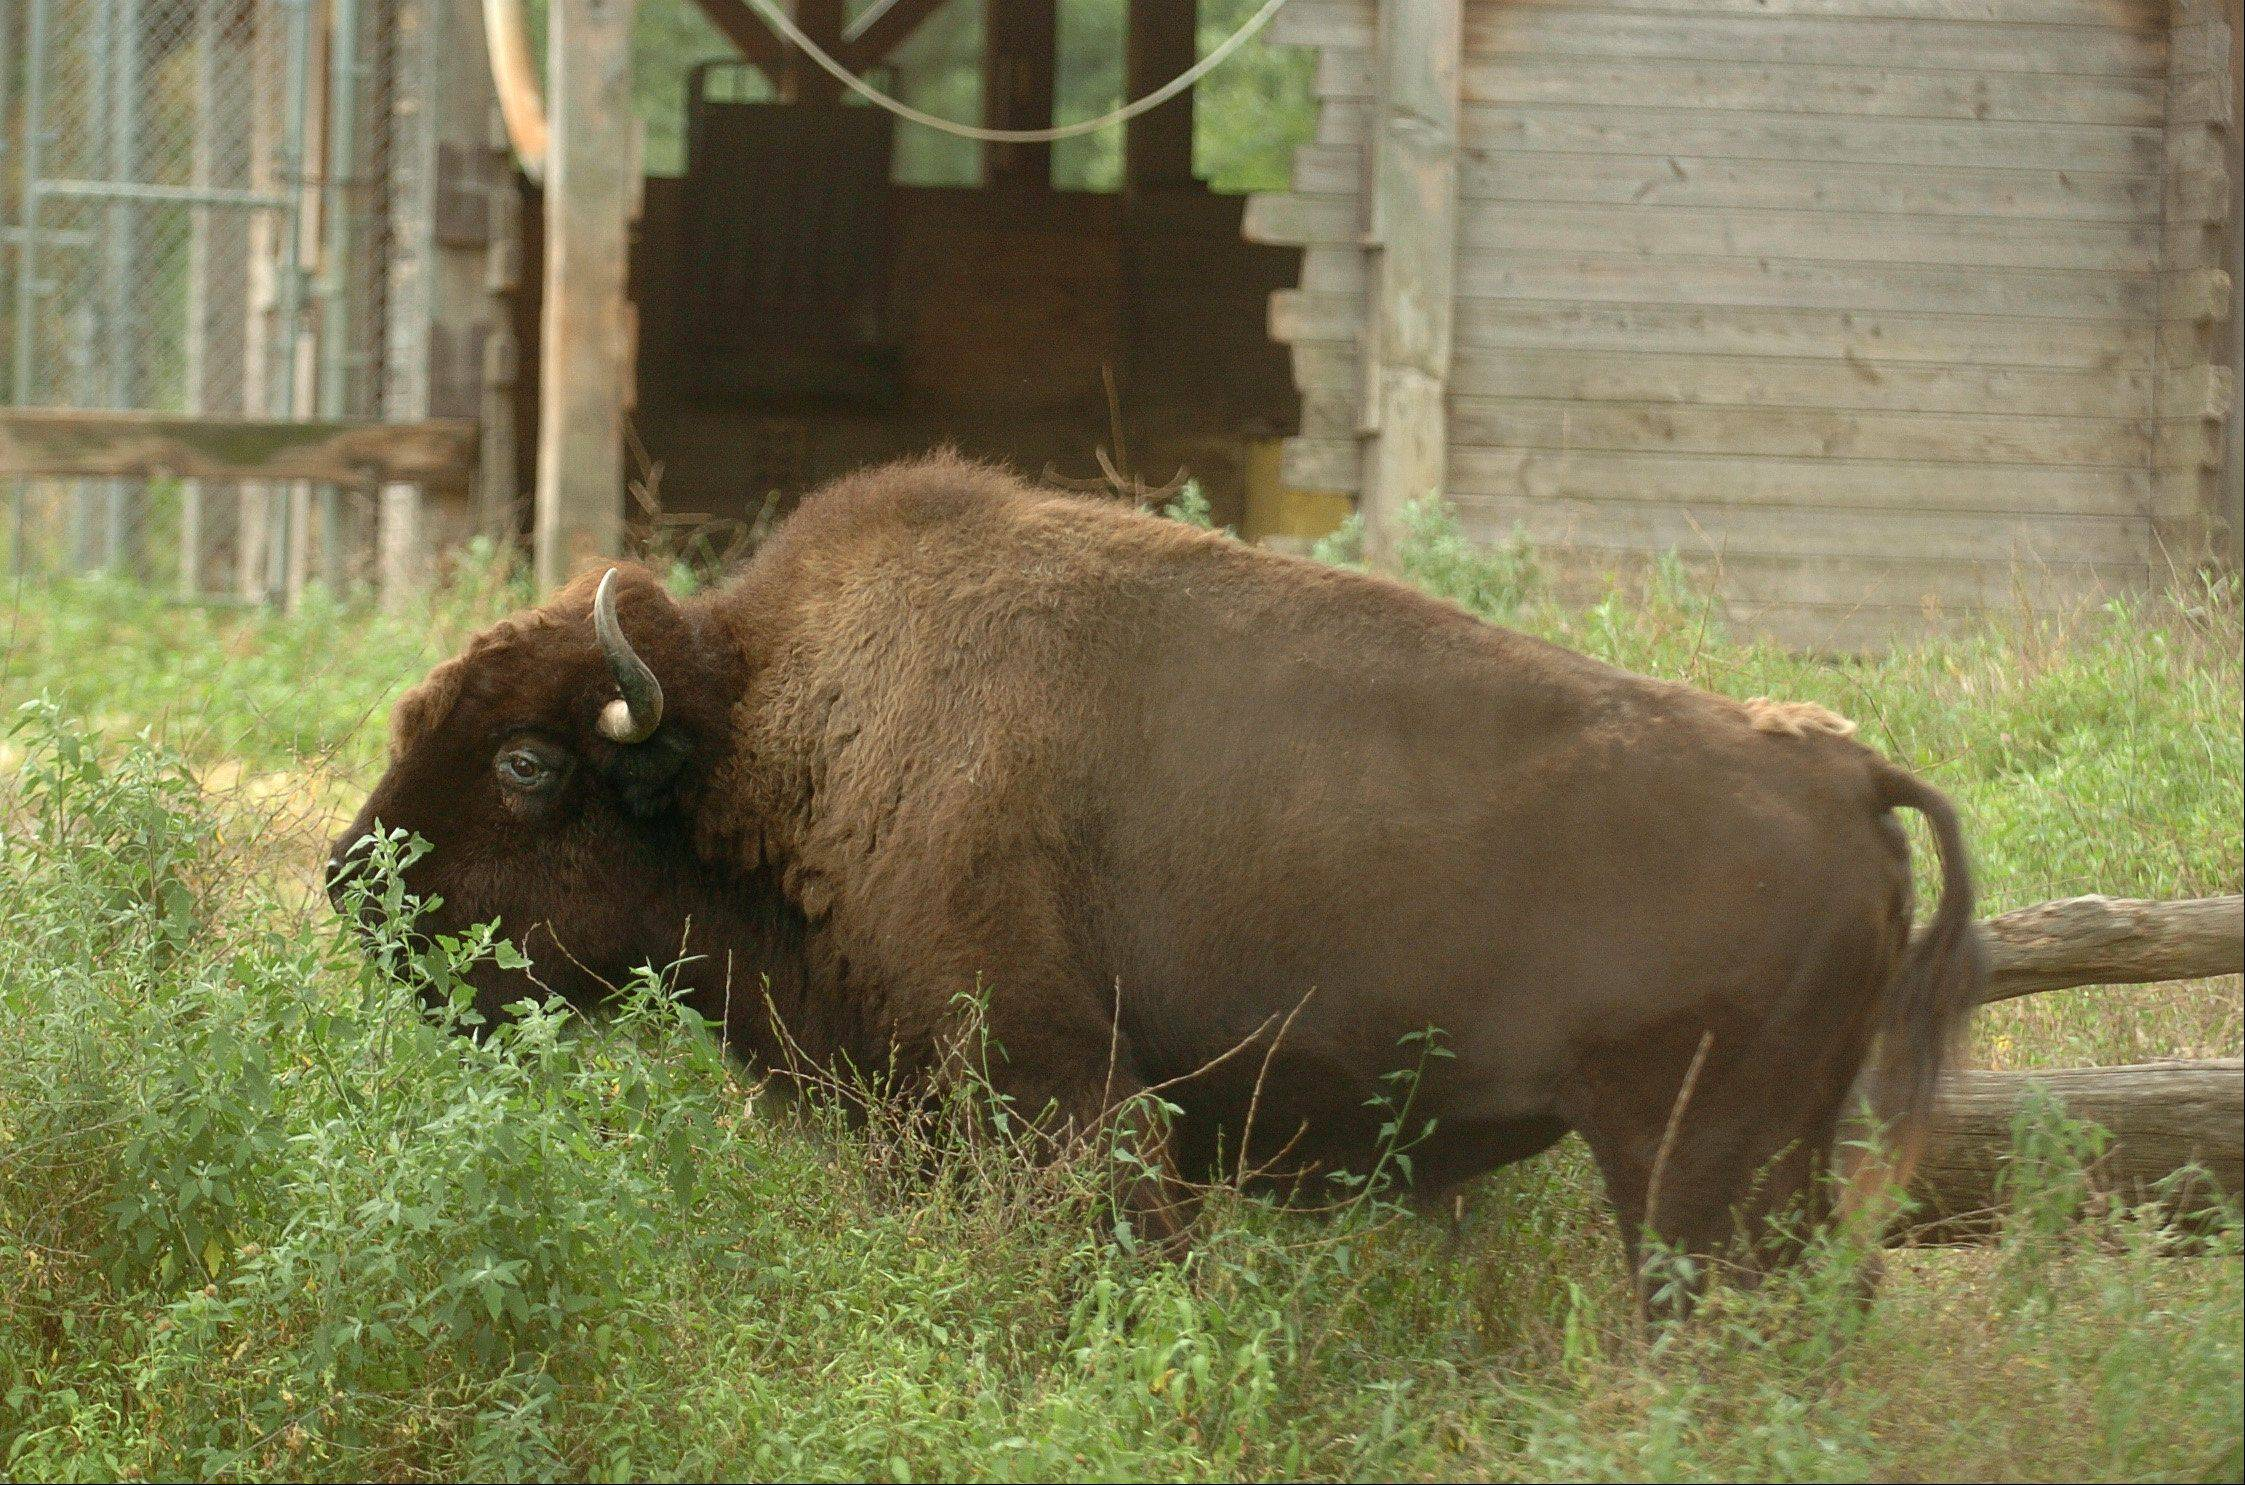 Sign up now to assist the Lords Park zookeeper in feeding the bison, deer and elk at Elgin's Lords Park Zoo on Saturday, June 30.